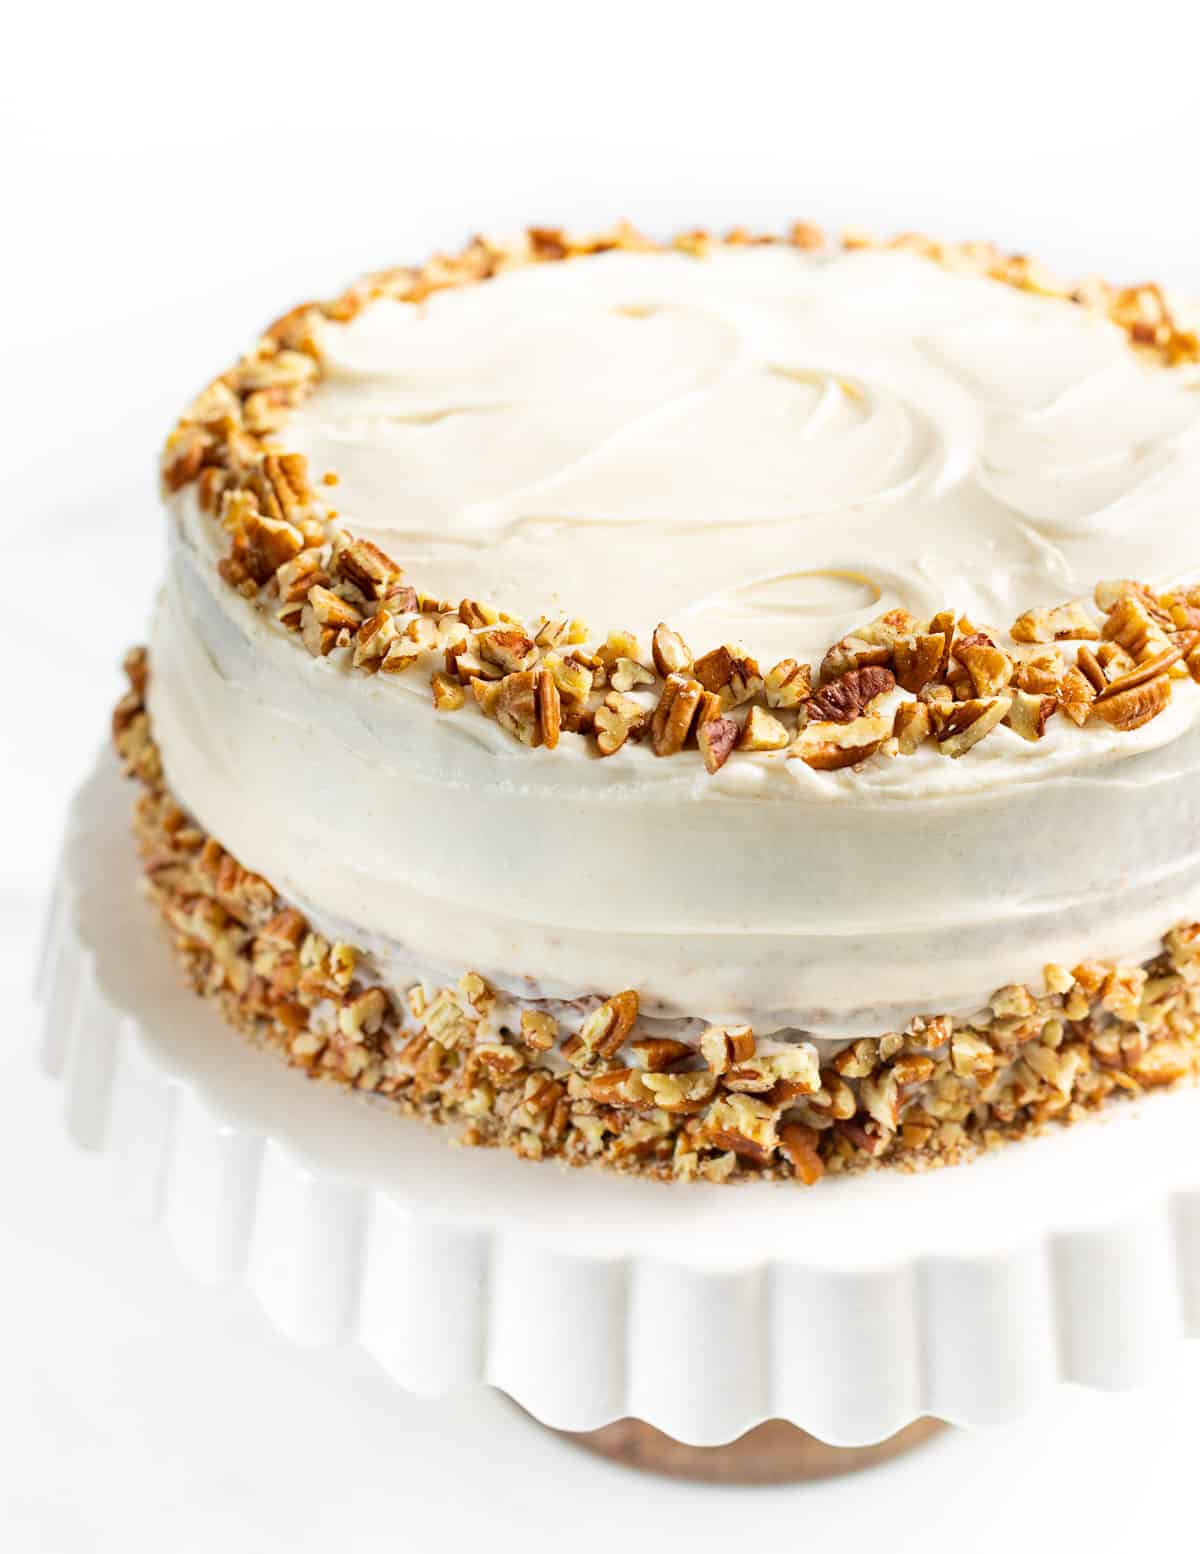 a large vegan hummingbird cake decorated with cream cheese frosting and pecans